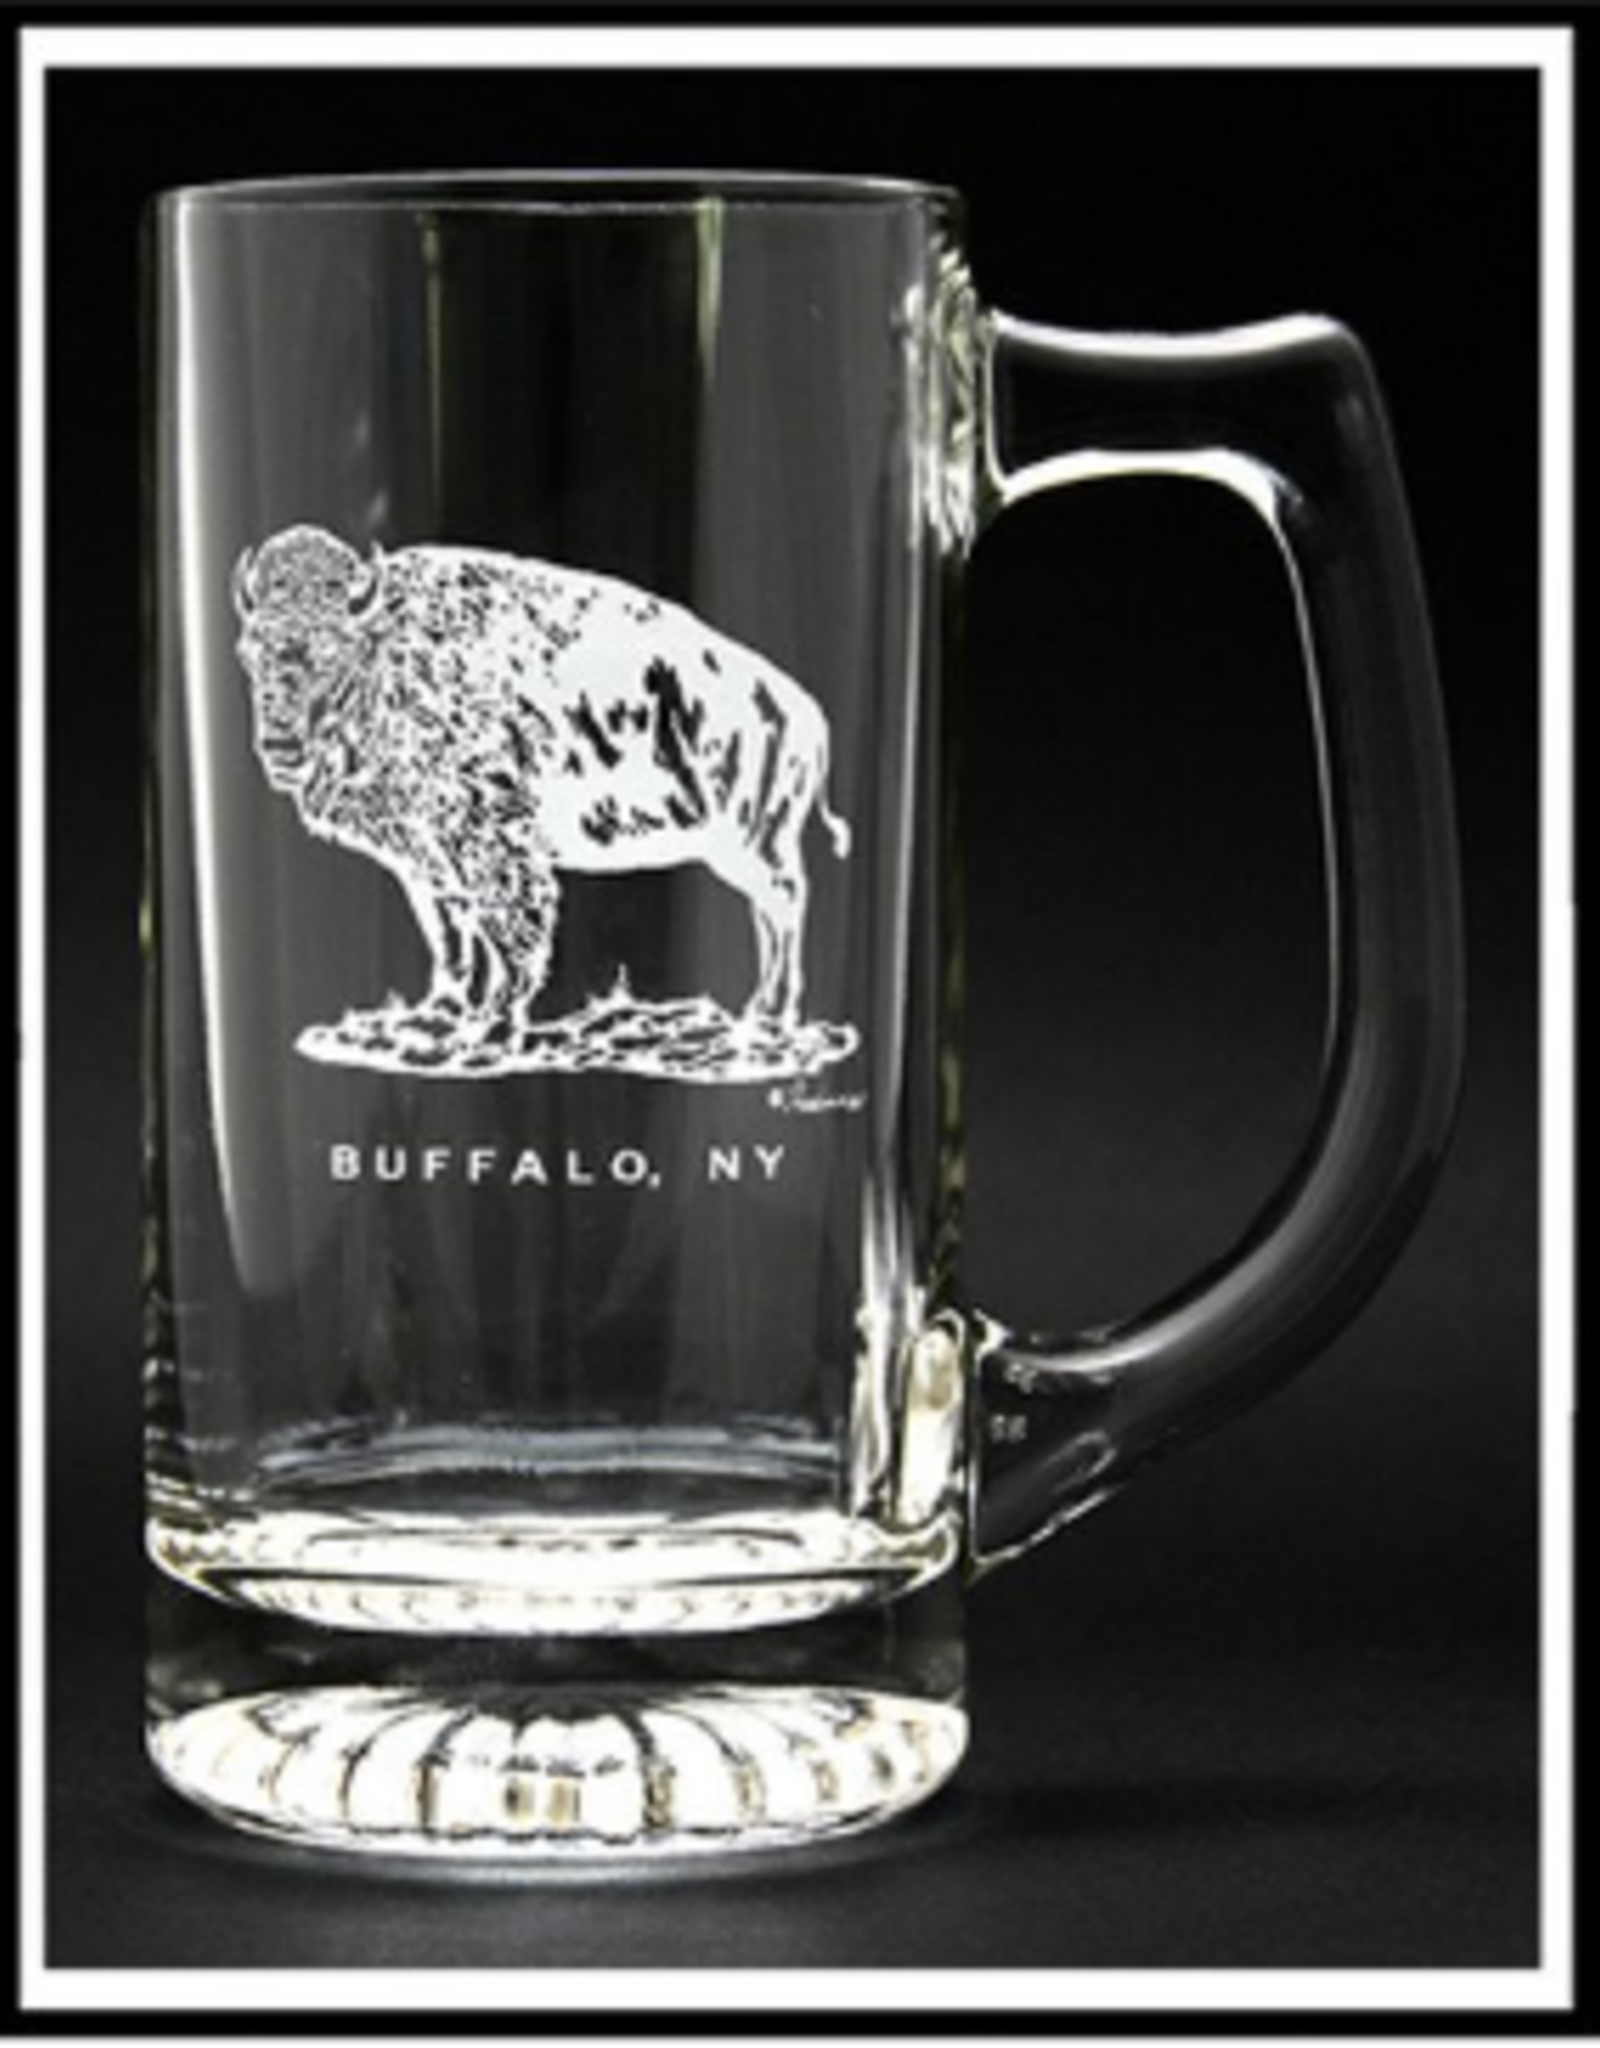 STANDING BUFFALO BEER STEIN